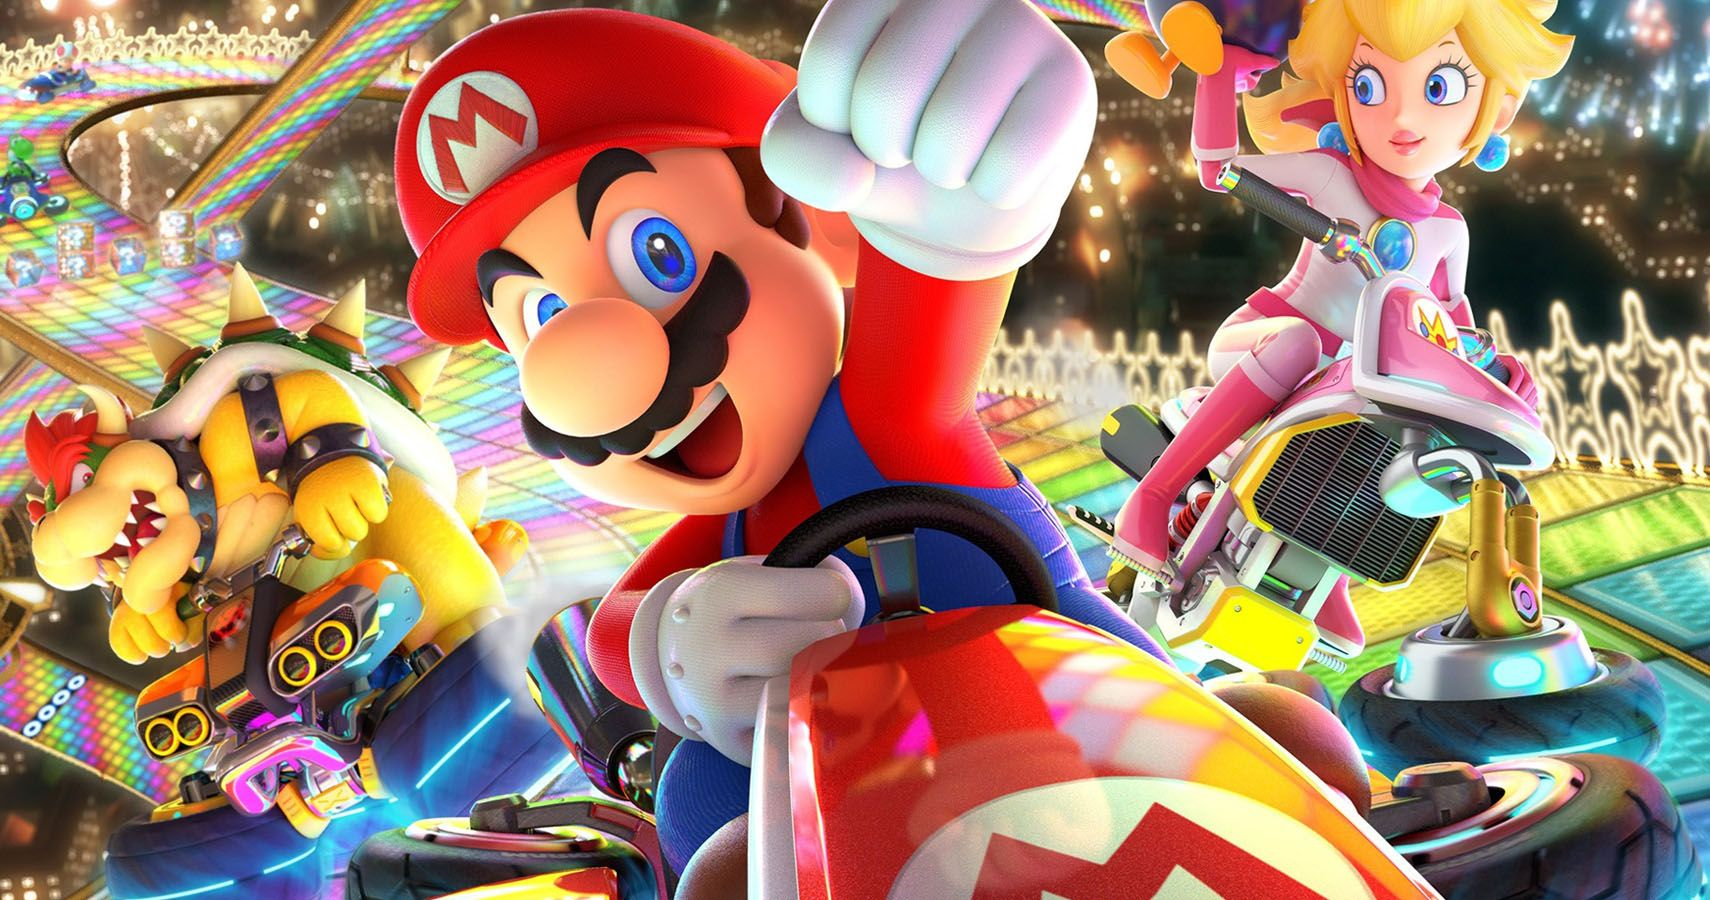 Mario Kart Every Game In The Franchise From Worst To Best